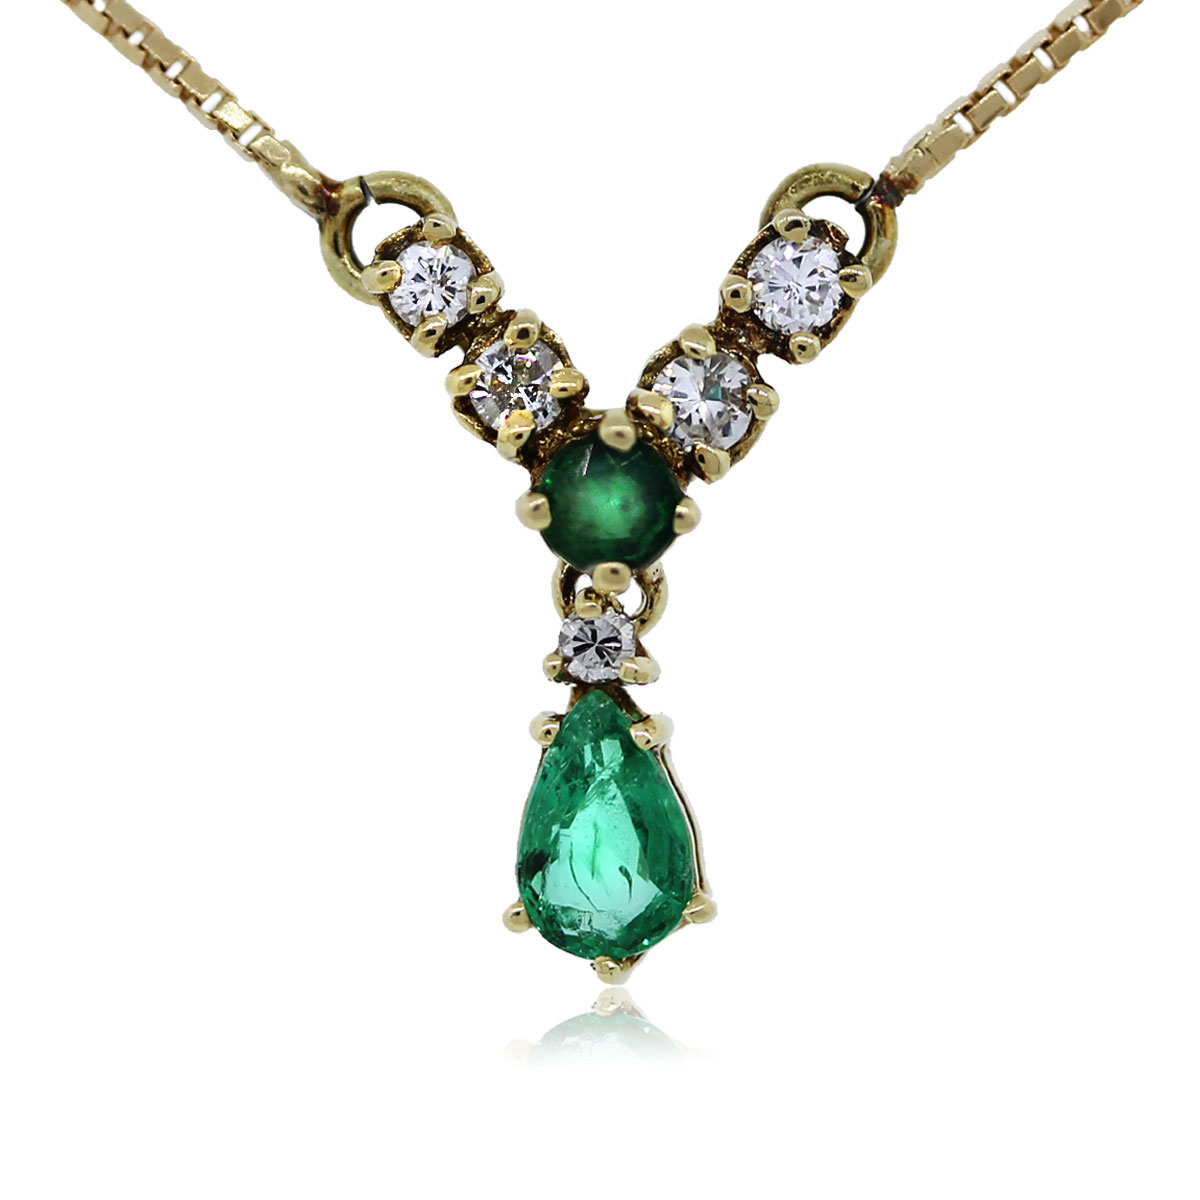 You are Viewing this Pear Shaped Emerald and Diamond Necklace !!